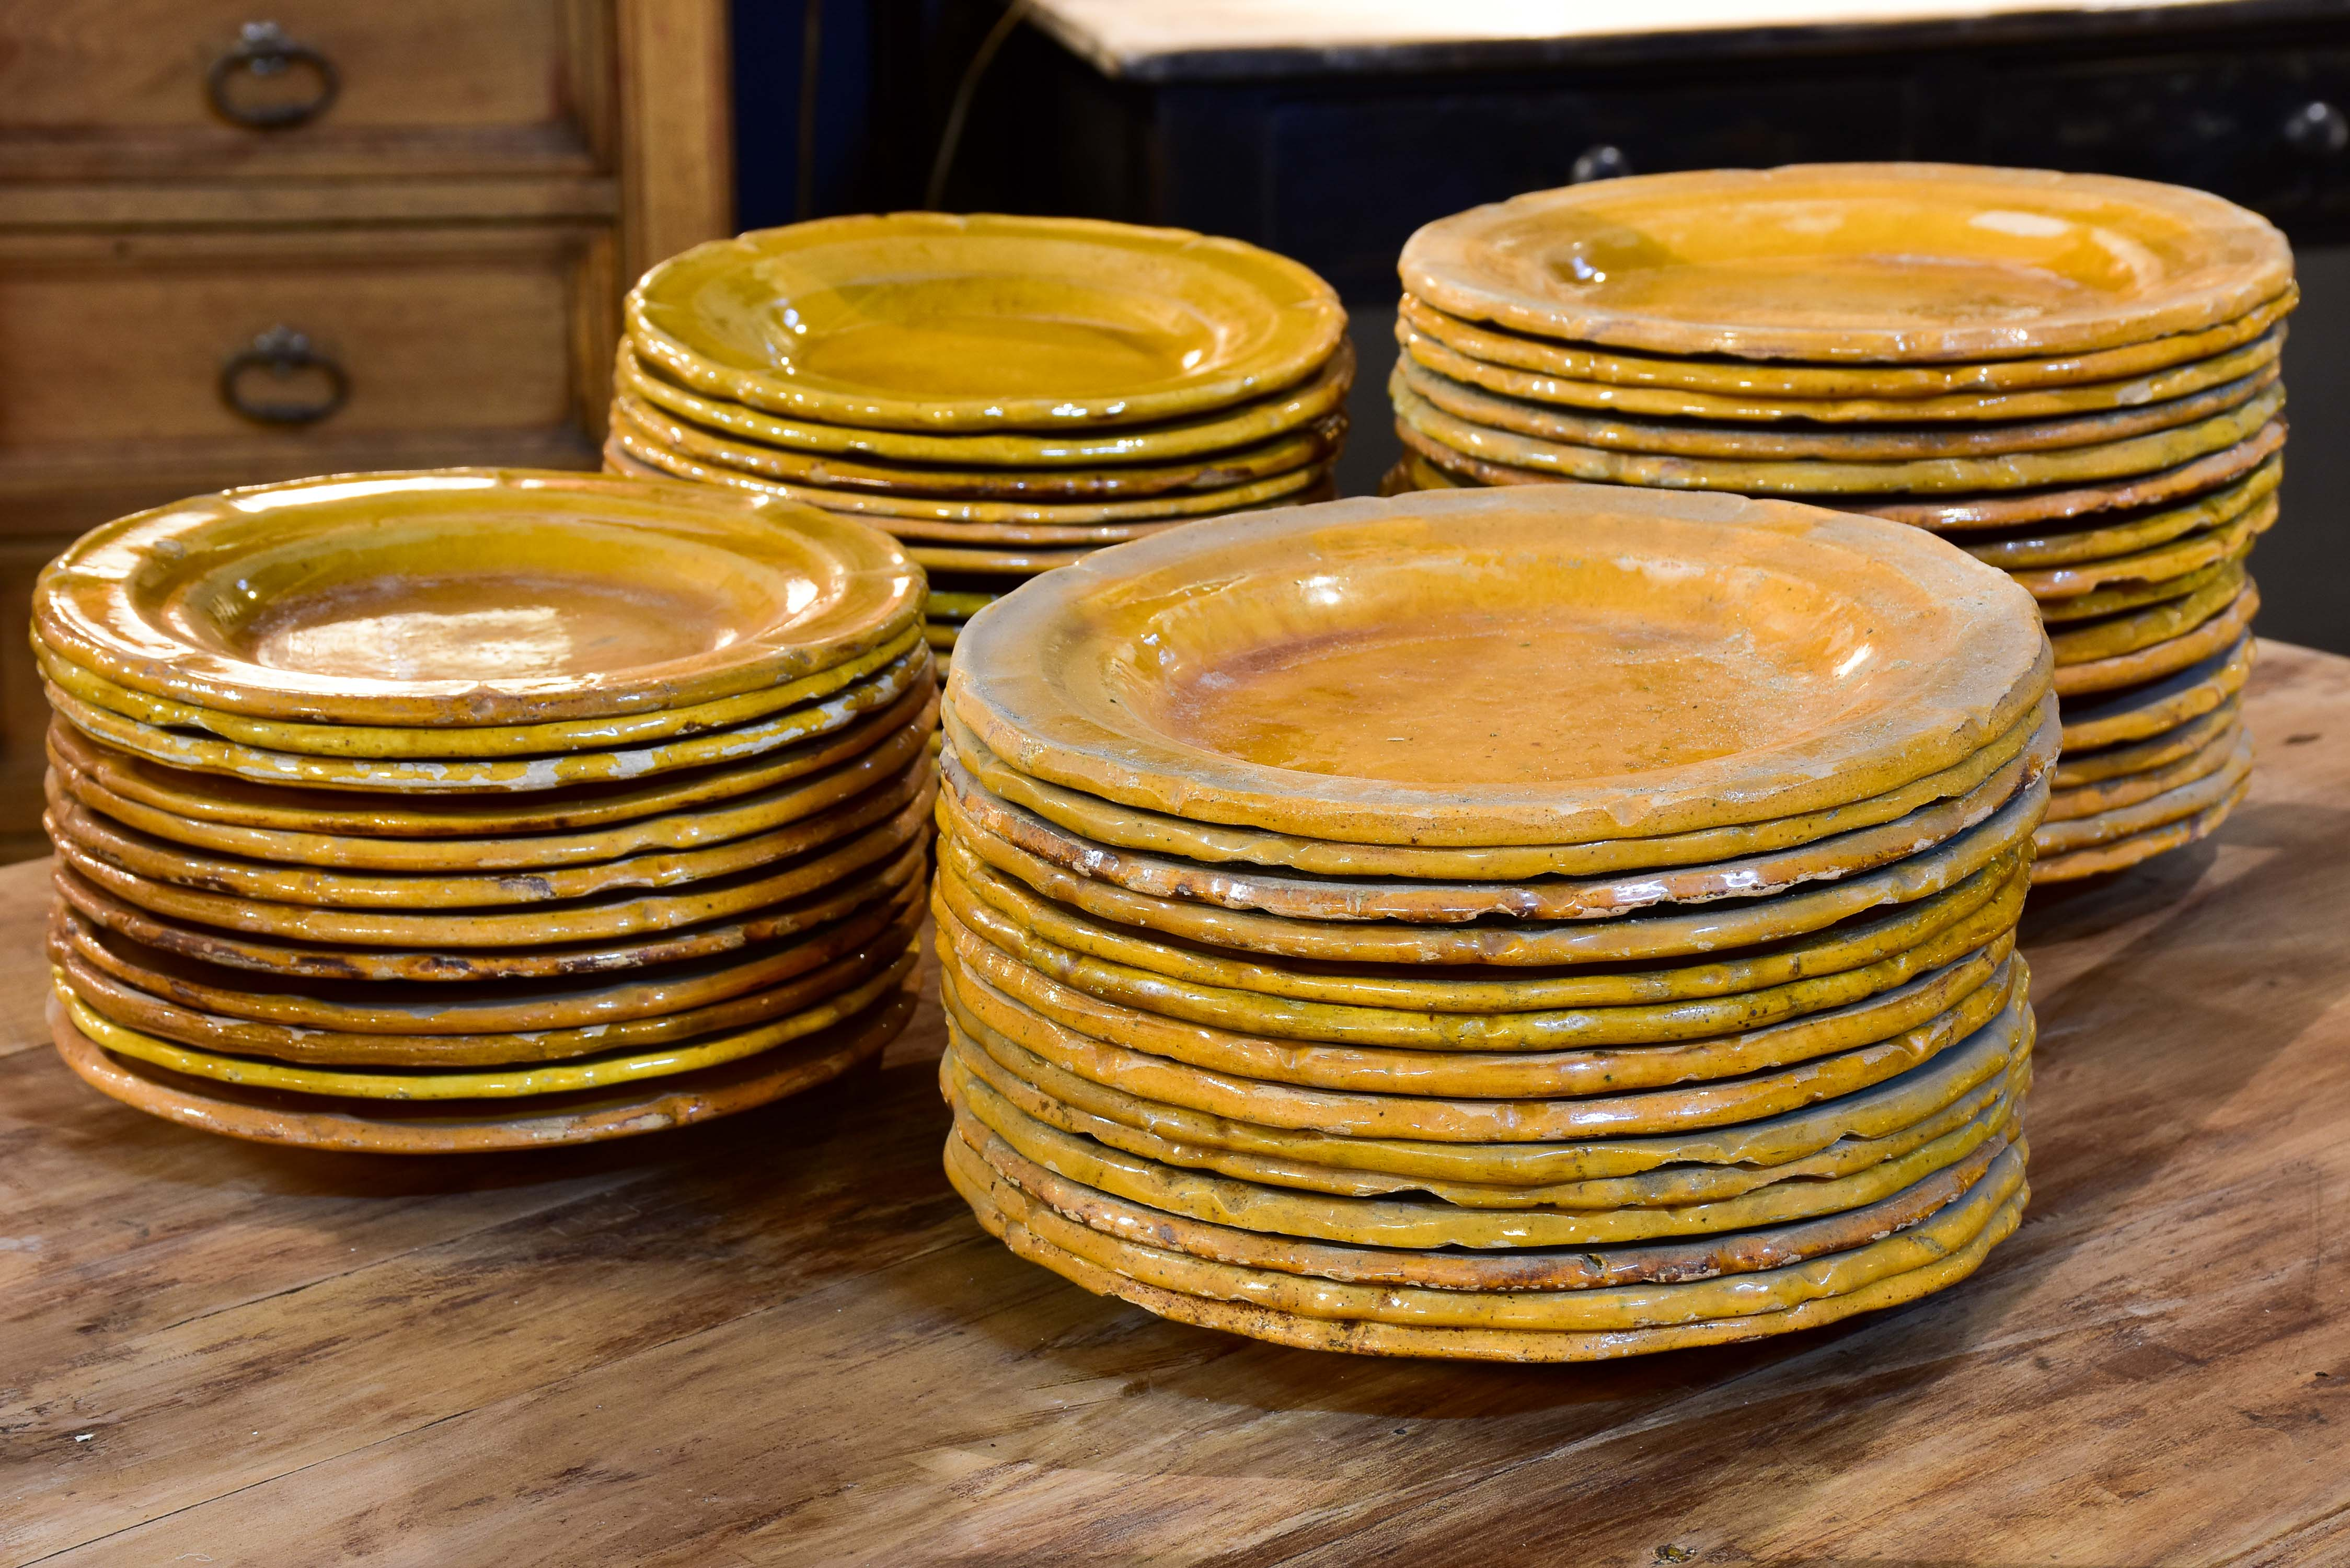 Early 20th century Provençal plates - 57